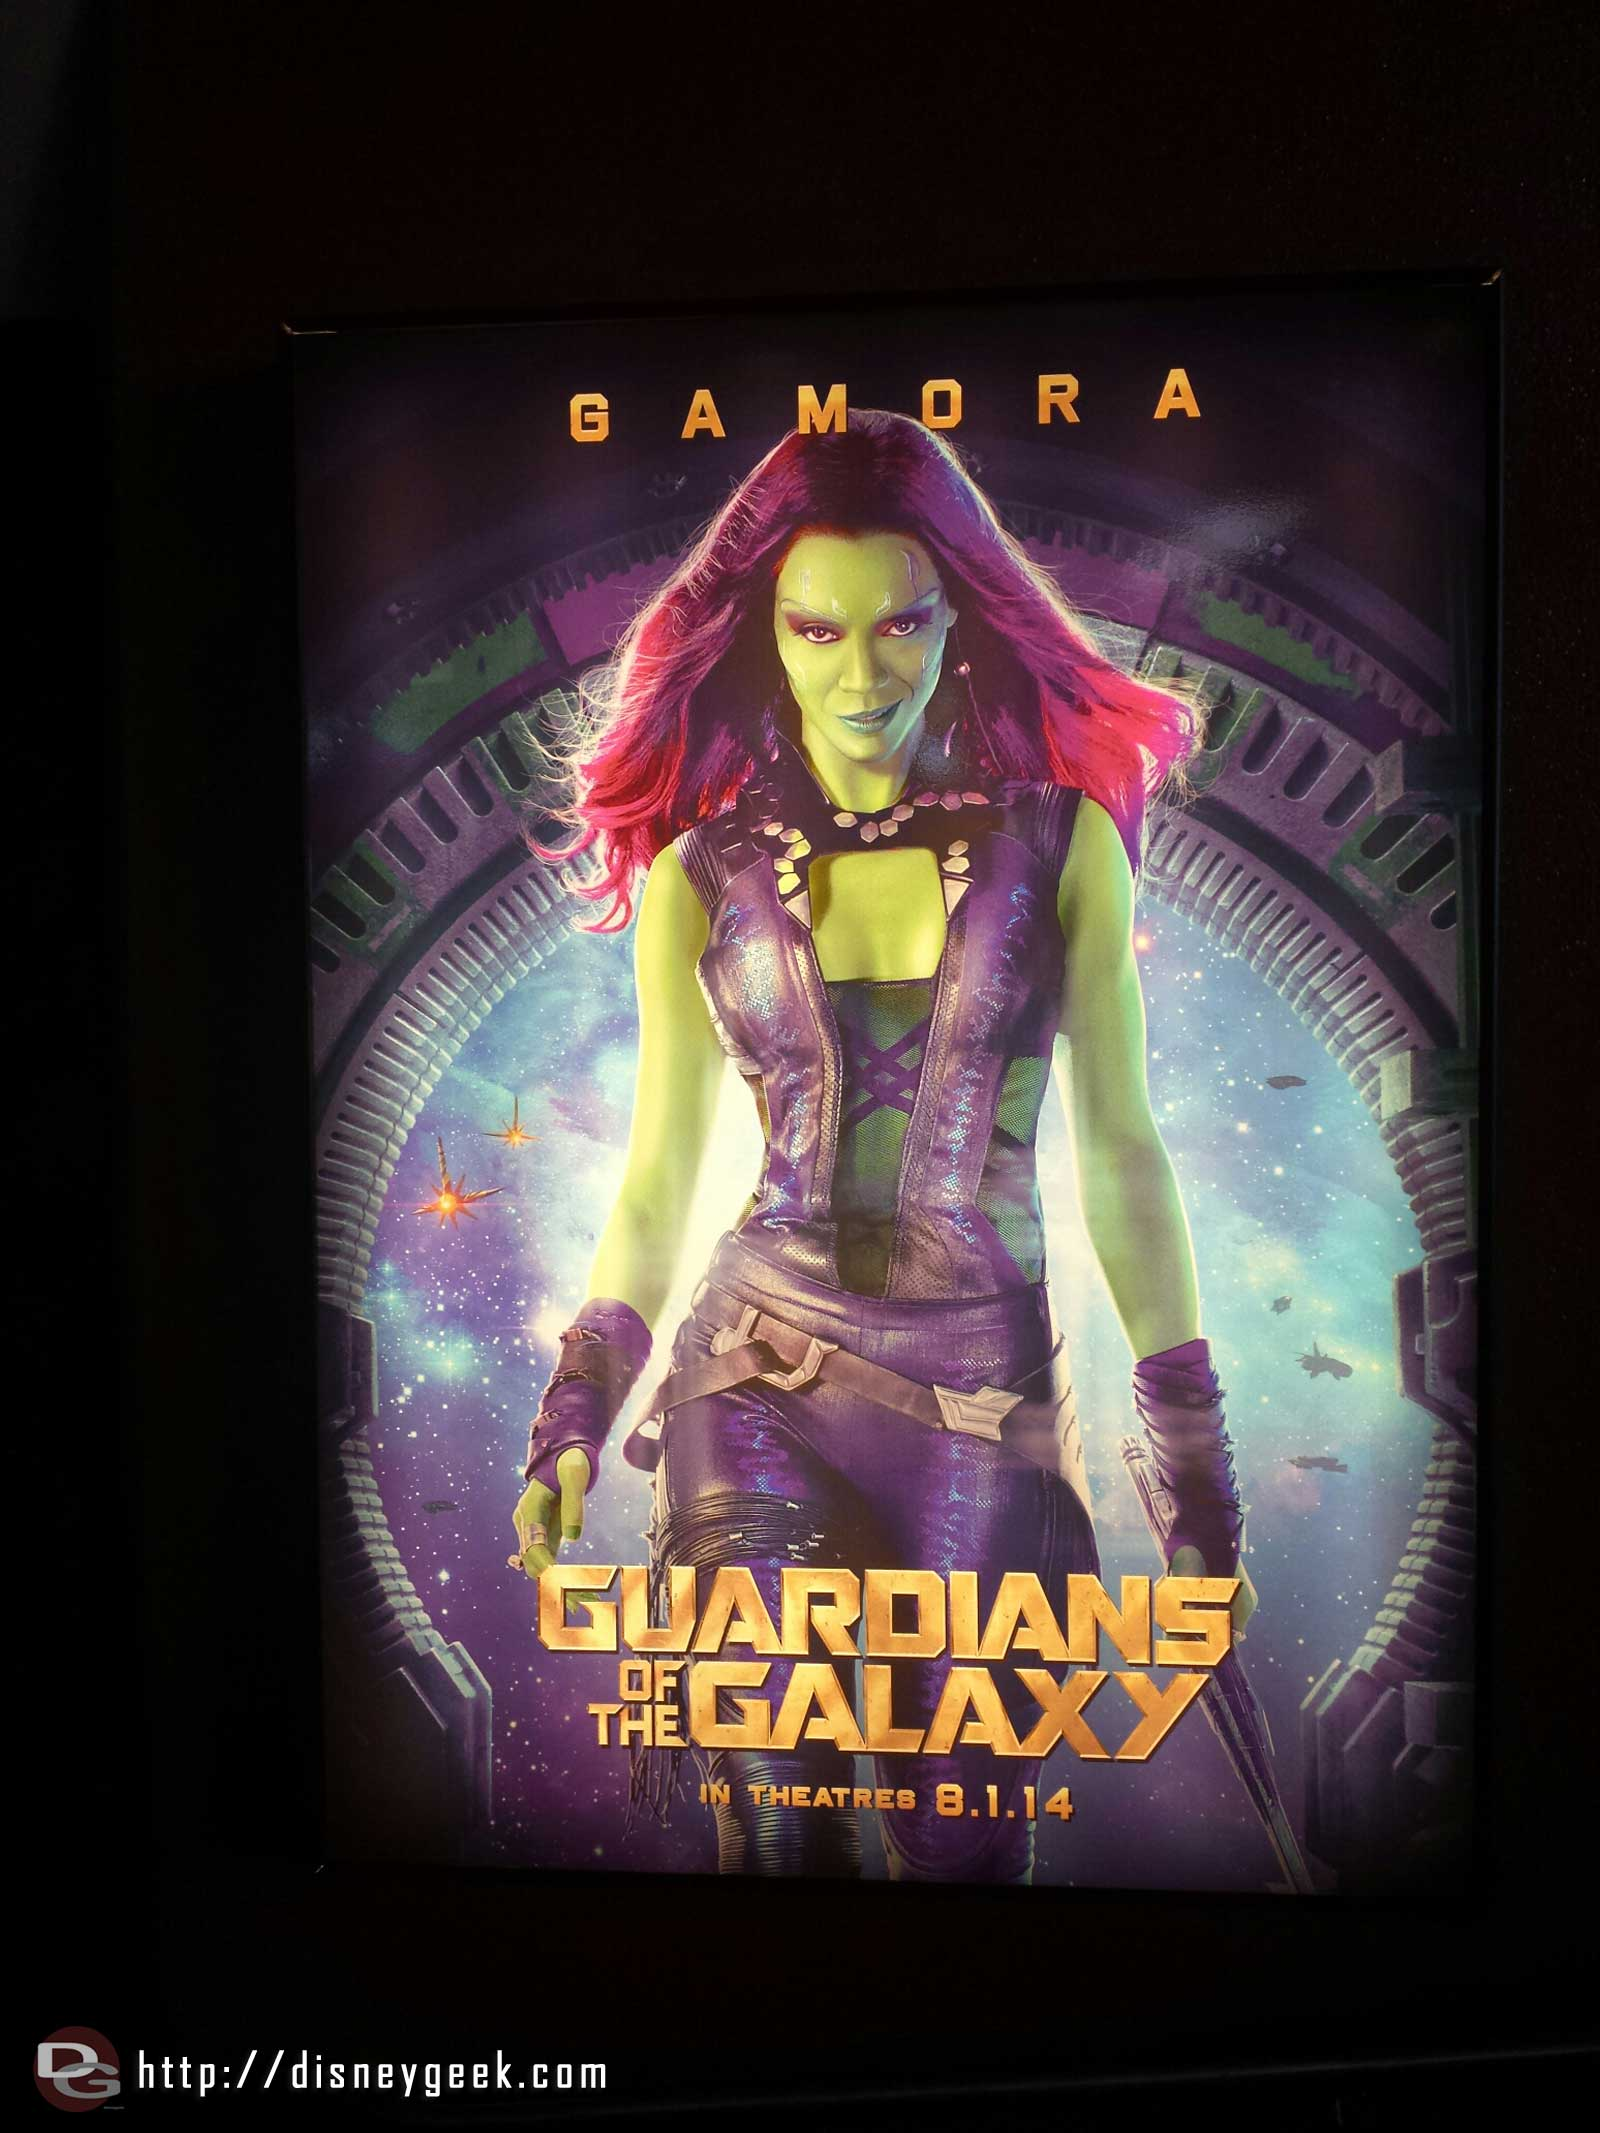 Stopping by the Magic Eye Theater for the AP preview of the sneak peek of Guardians of the Galaxy, here is one of the movie posters in the queue